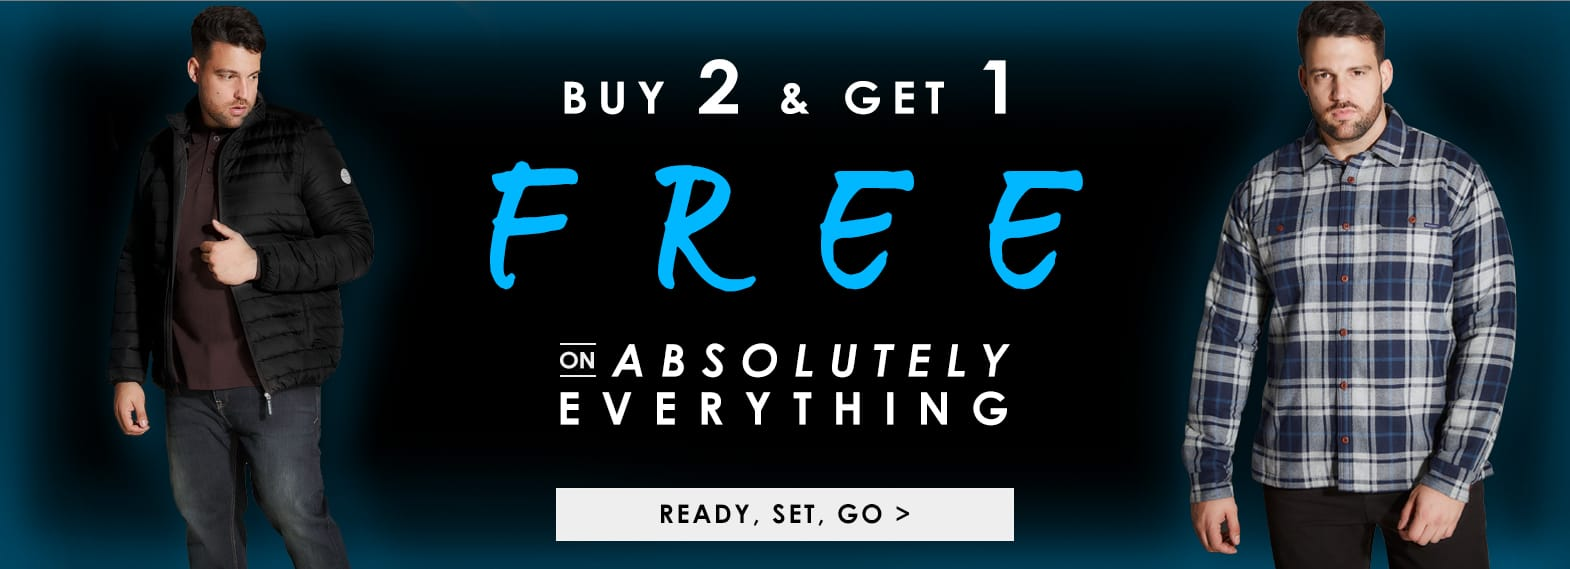 Buy 2 & Get 1 Free on Absolutely Everything! >